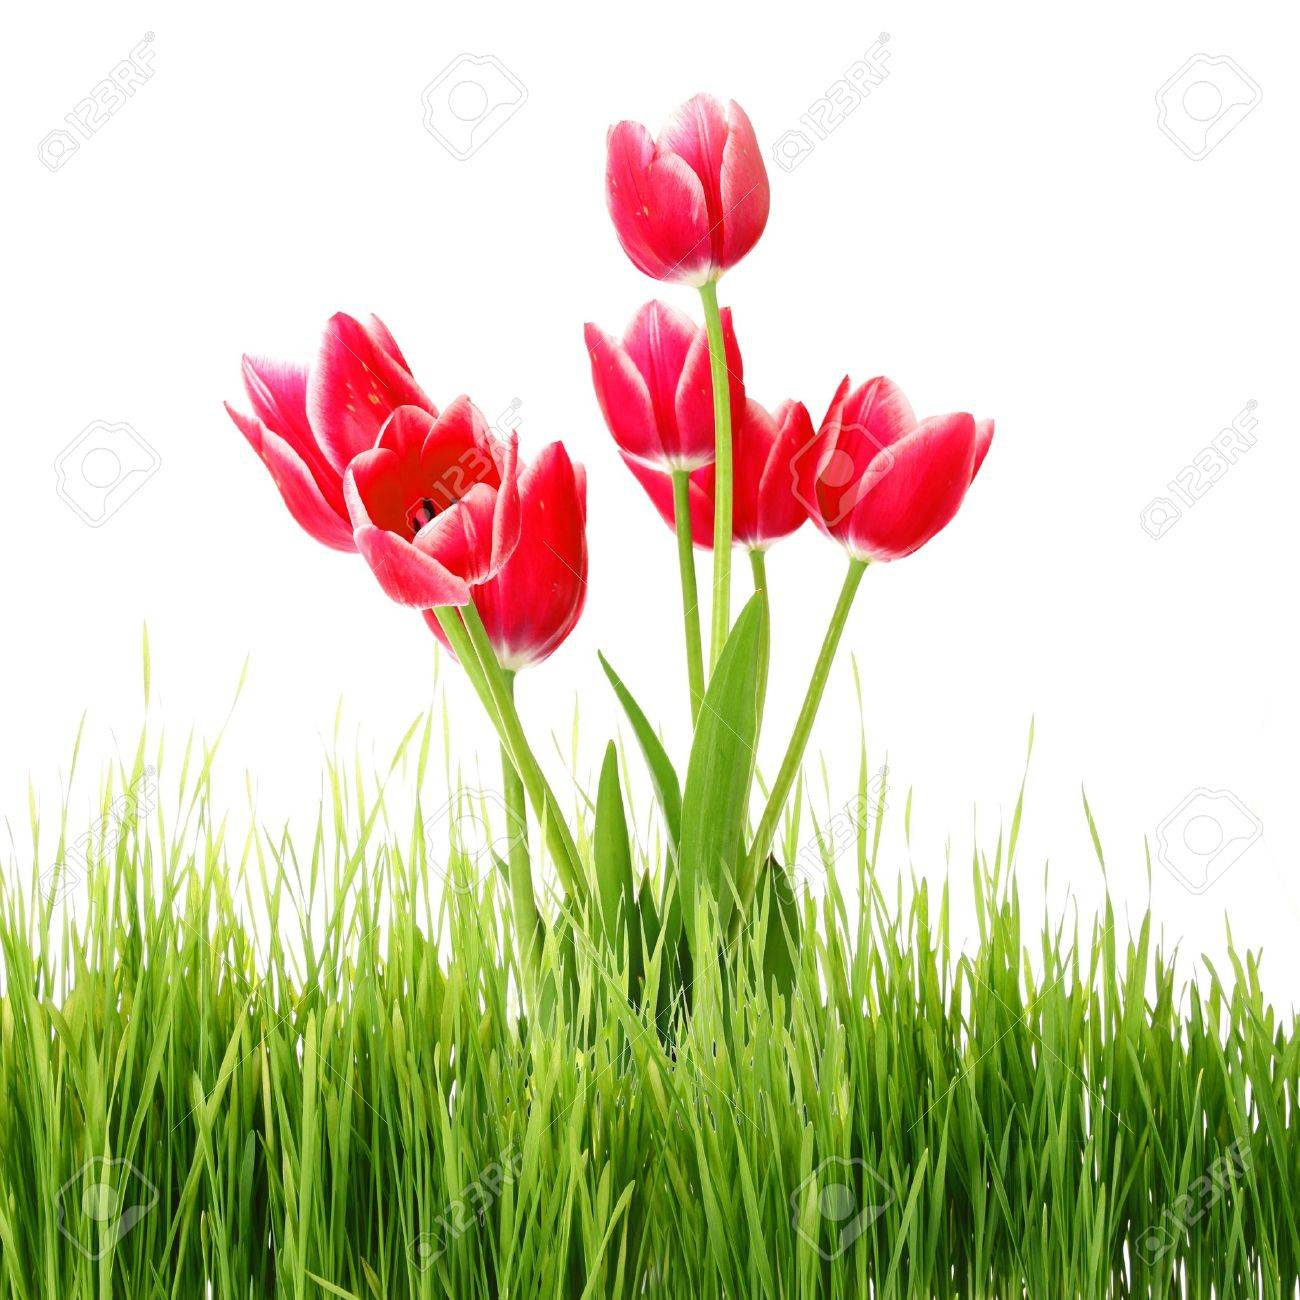 Red tulips in green grass isolated on white Stock Photo - 9516311